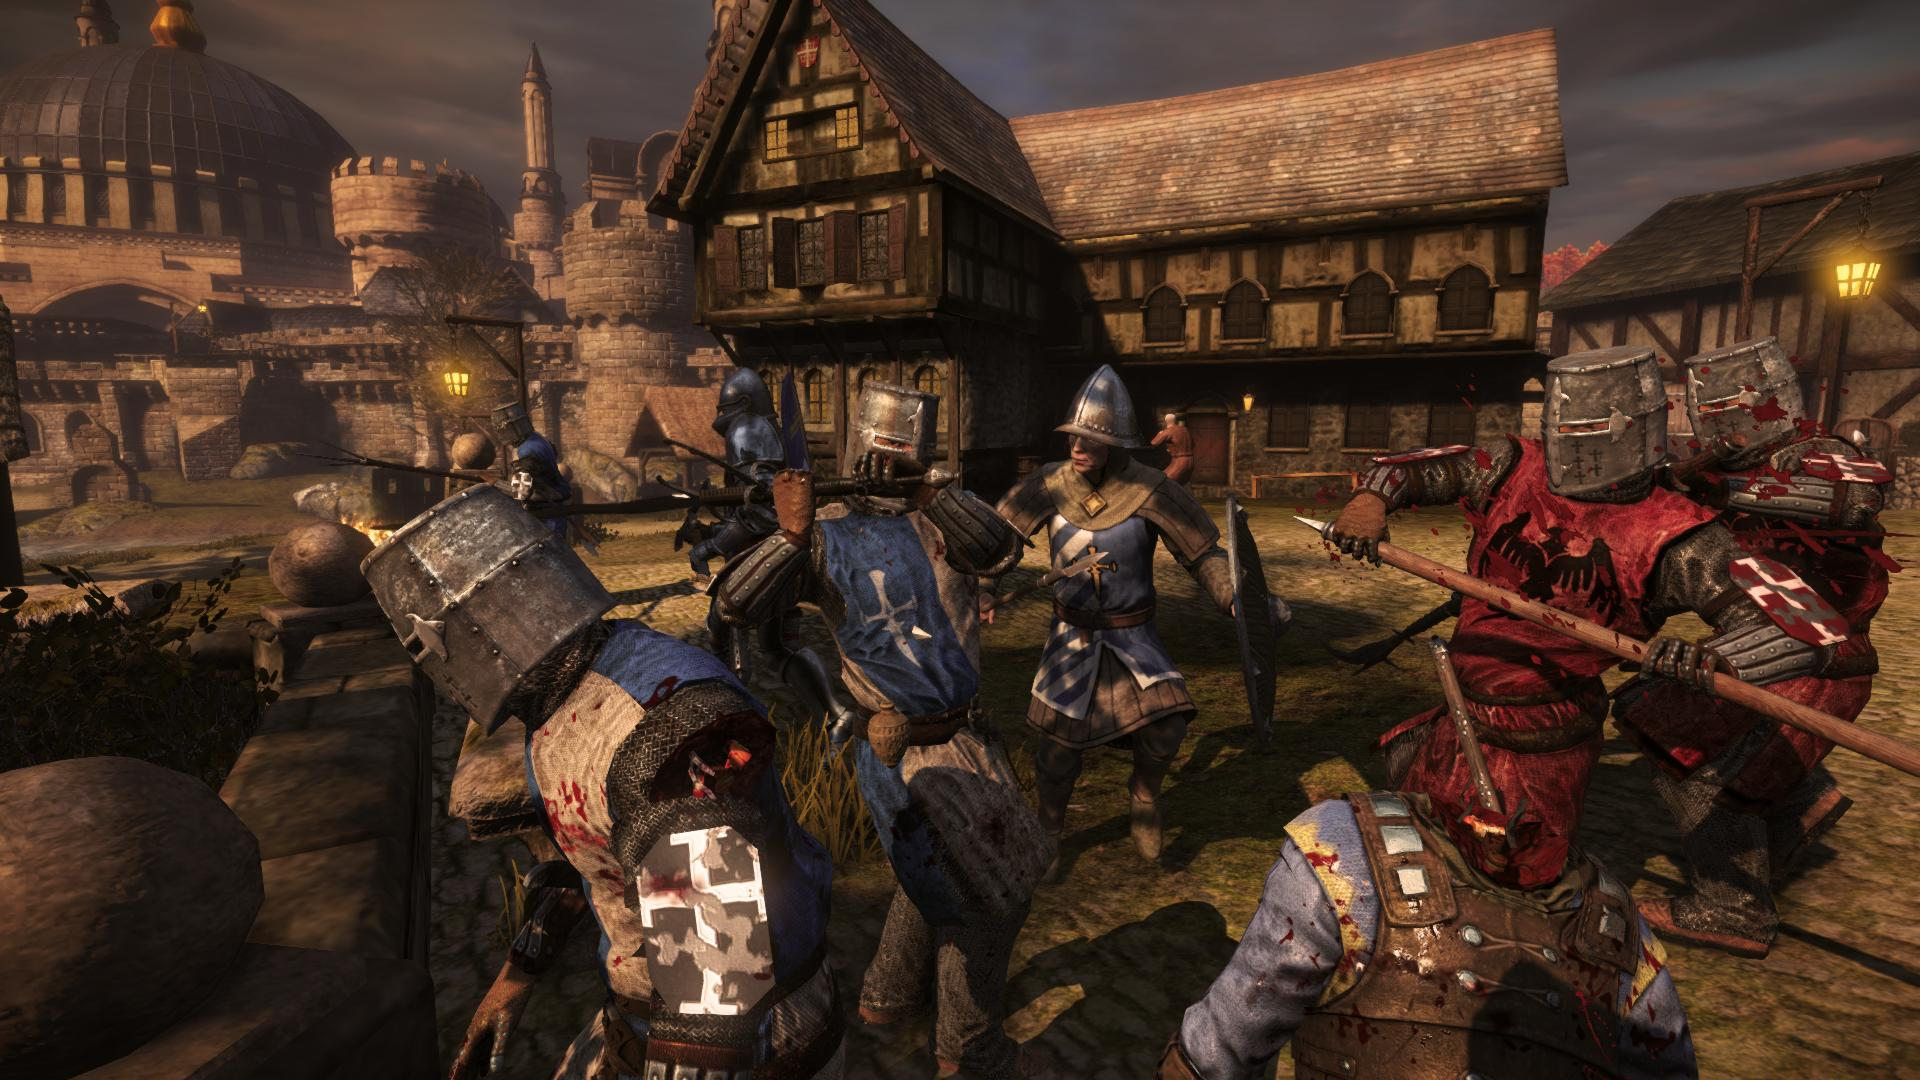 Chivalry Medieval Warfare 2 The GAME OF THRONES Game Youve Always Wanted... Sort Of.